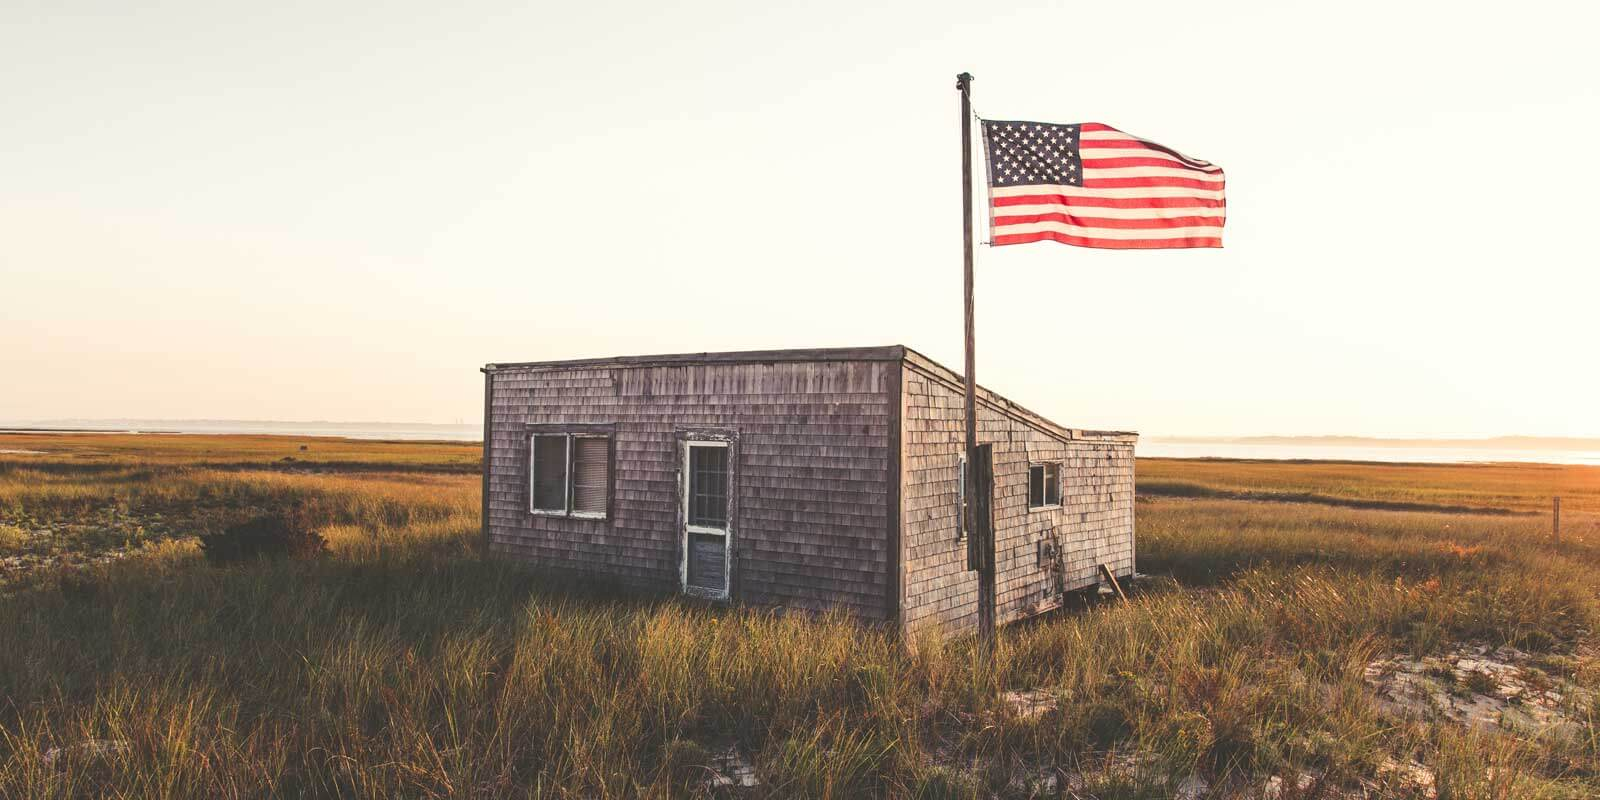 American flag waves in the air next to a seaside shack in Cape Cod